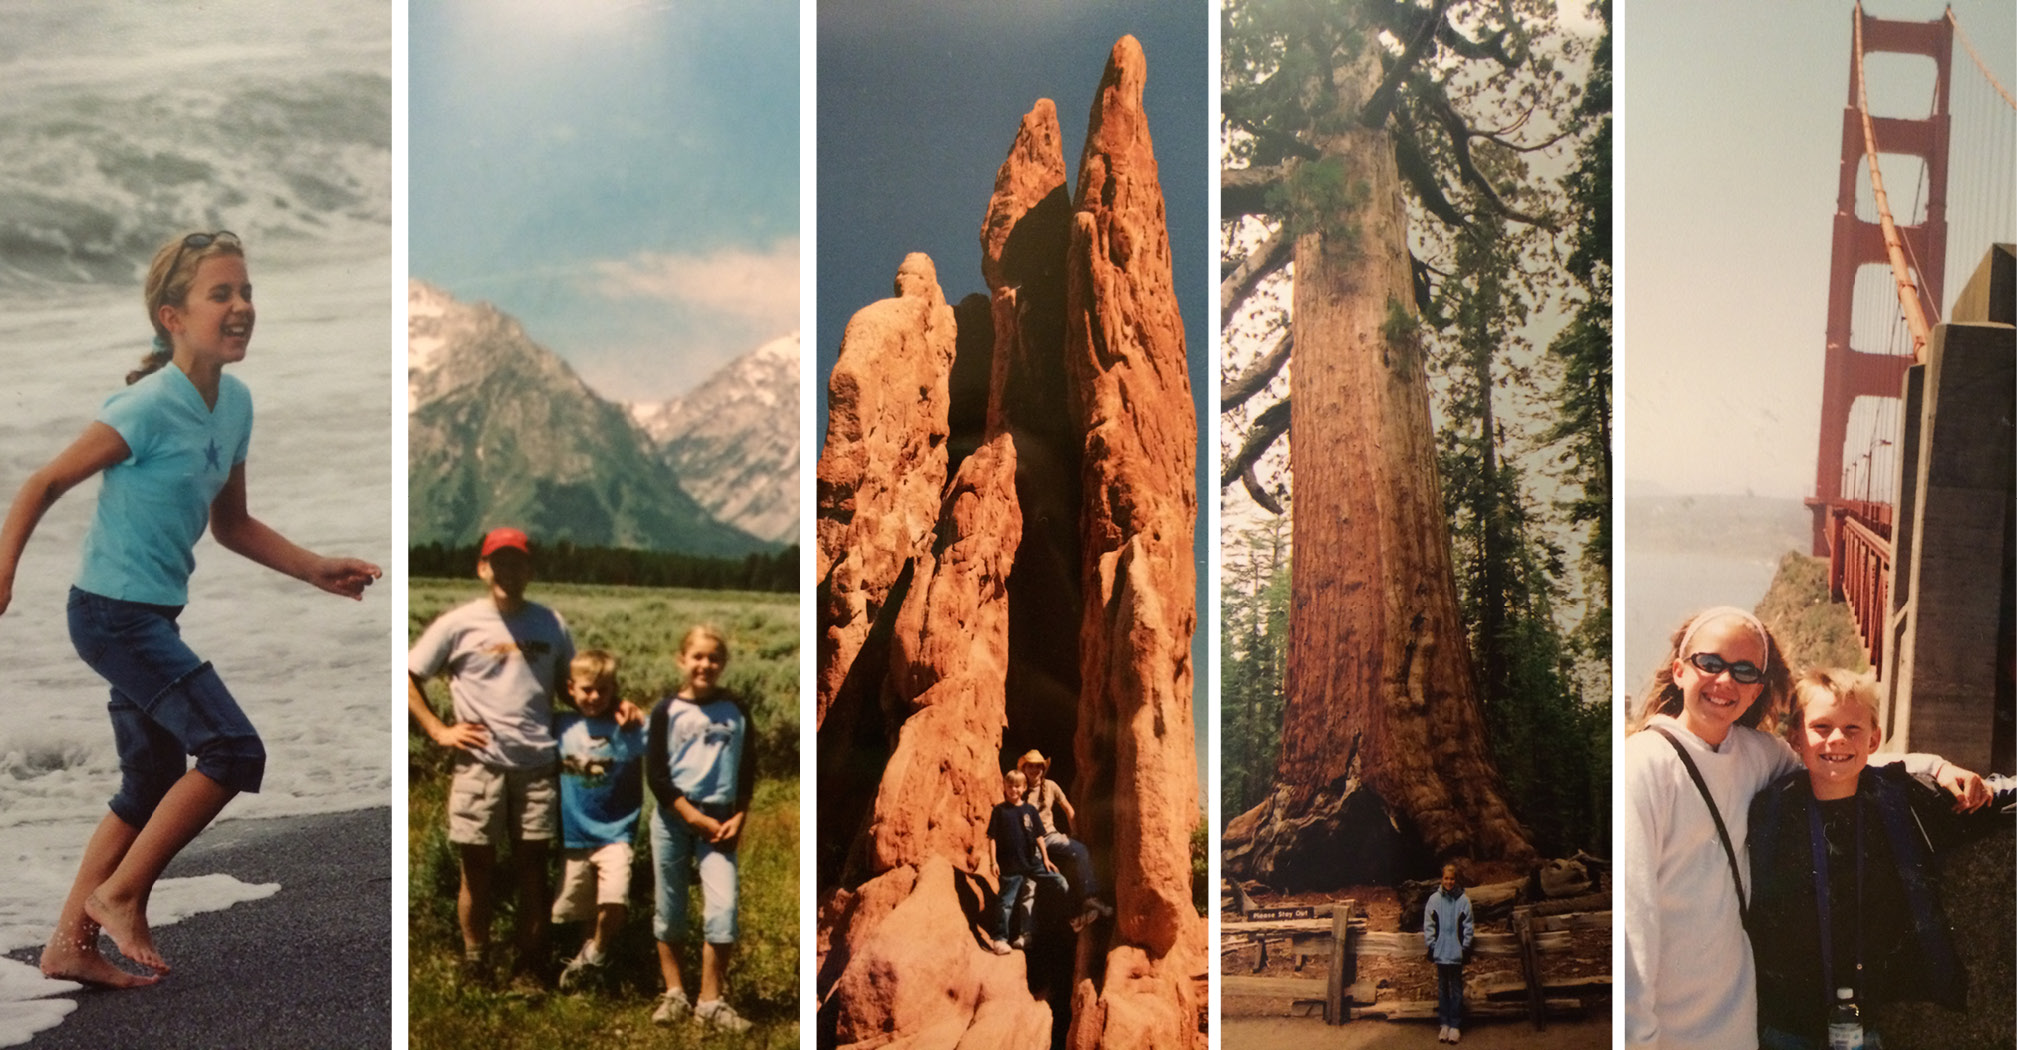 My family took a six-week road trip up the West Coast in 2004-- best summer adventure of all time. I'll never forget experiencing so much of America like that.